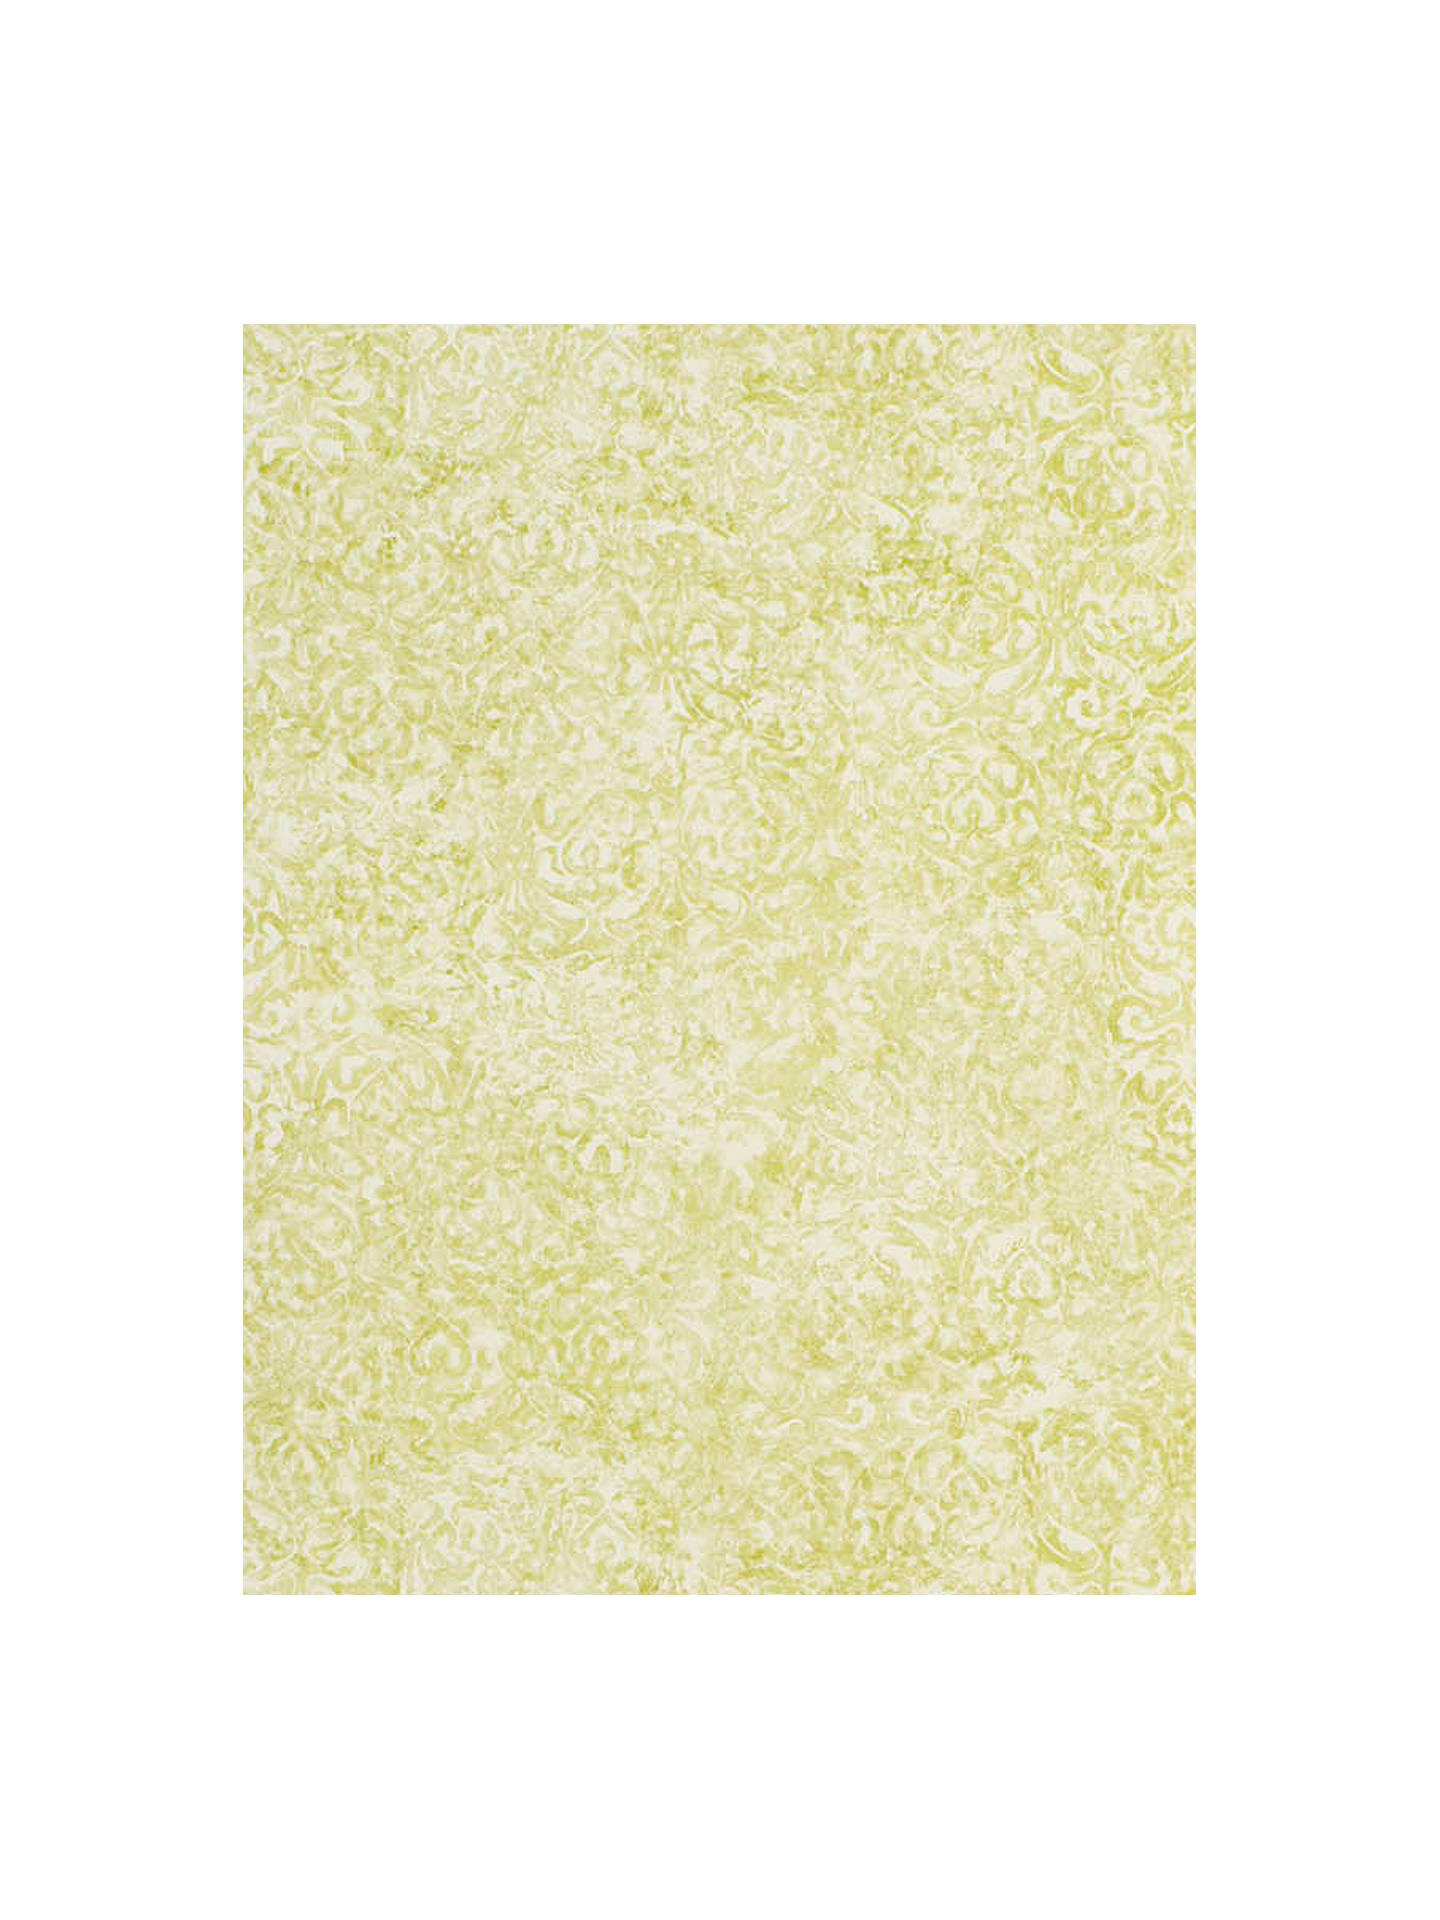 Buy Designers Guild Contarini Wallpaper, Moss, P602/10 Online at johnlewis.com